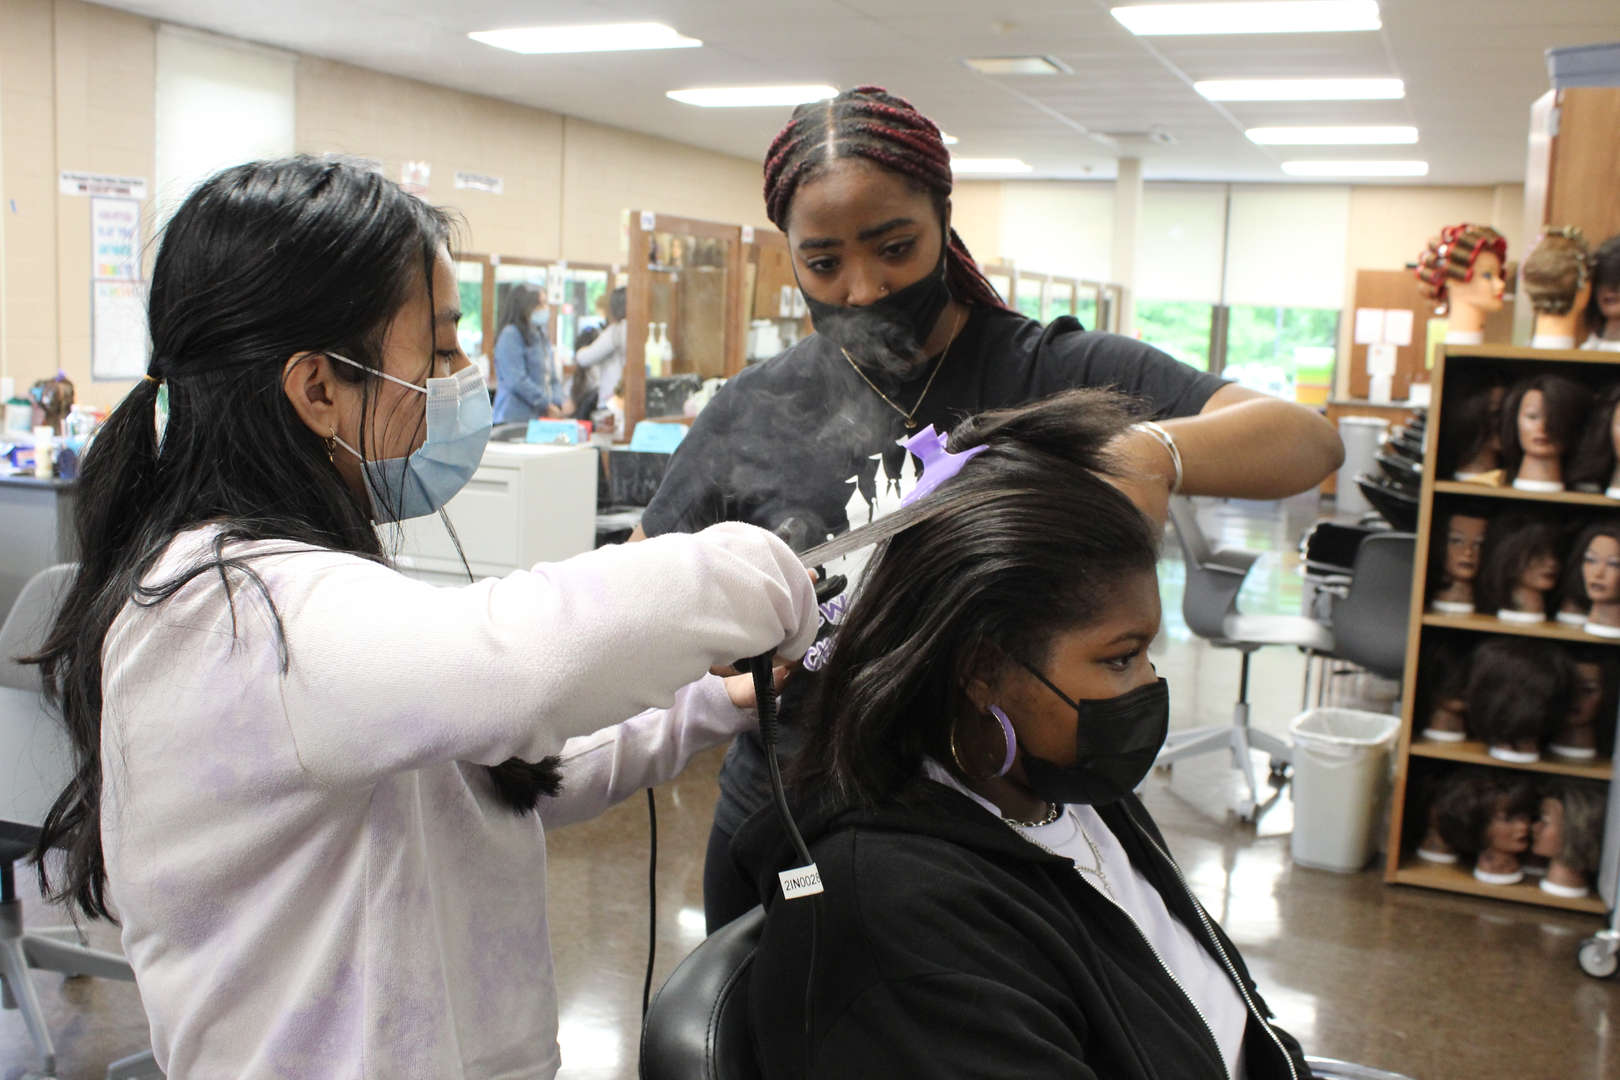 Girl using flatiron tool while another girl watches